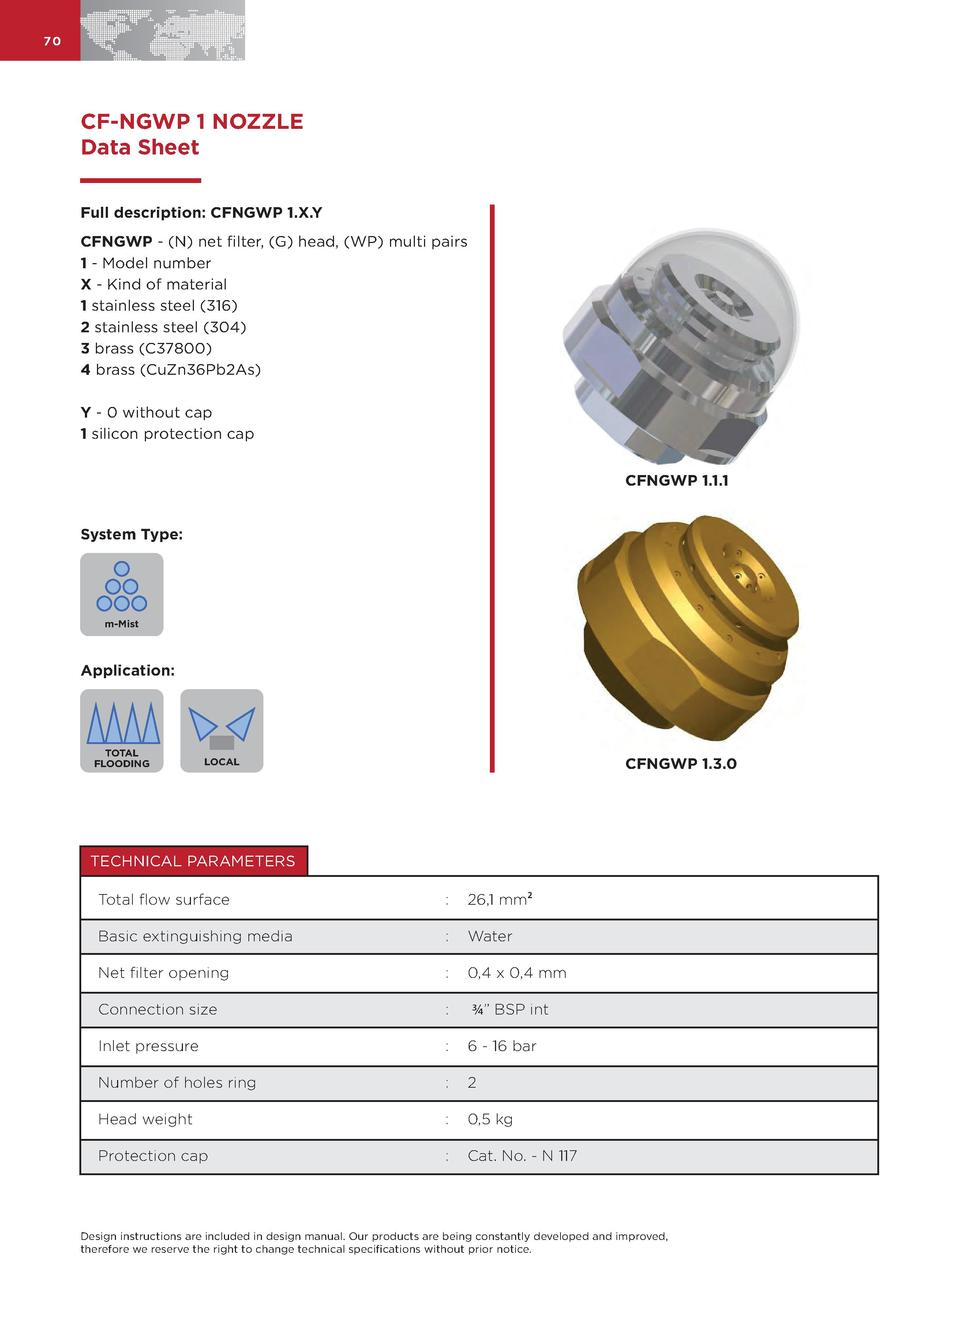 70  CF-NGWP 1 NOZZLE Data Sheet Full description  CFNGWP 1.X.Y CFNGWP -  N  net filter,  G  head,  WP  multi pairs 1 - Mod...